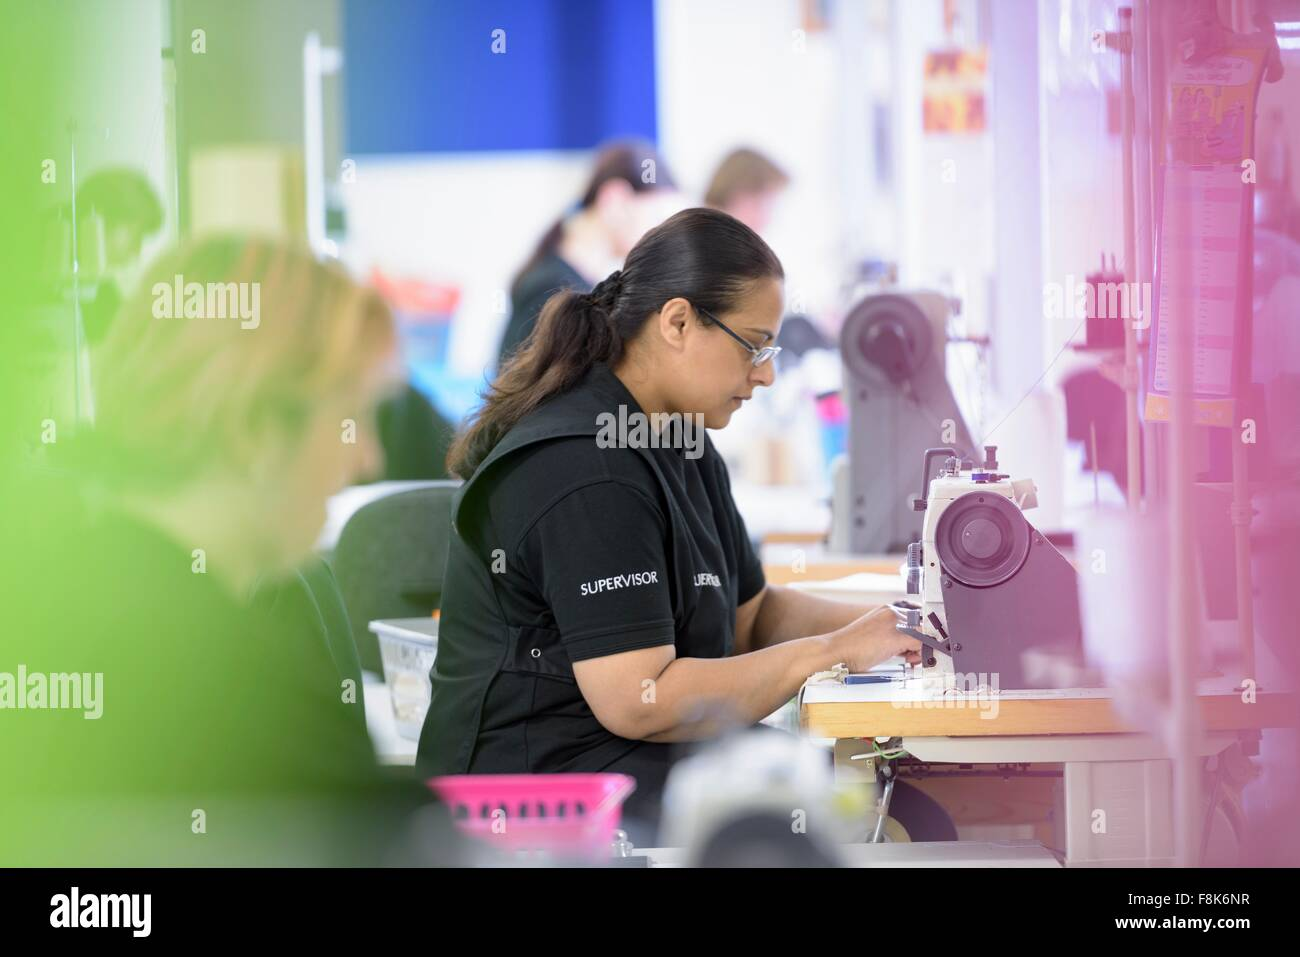 Workers sewing orthopaedic garments in factory - Stock Image